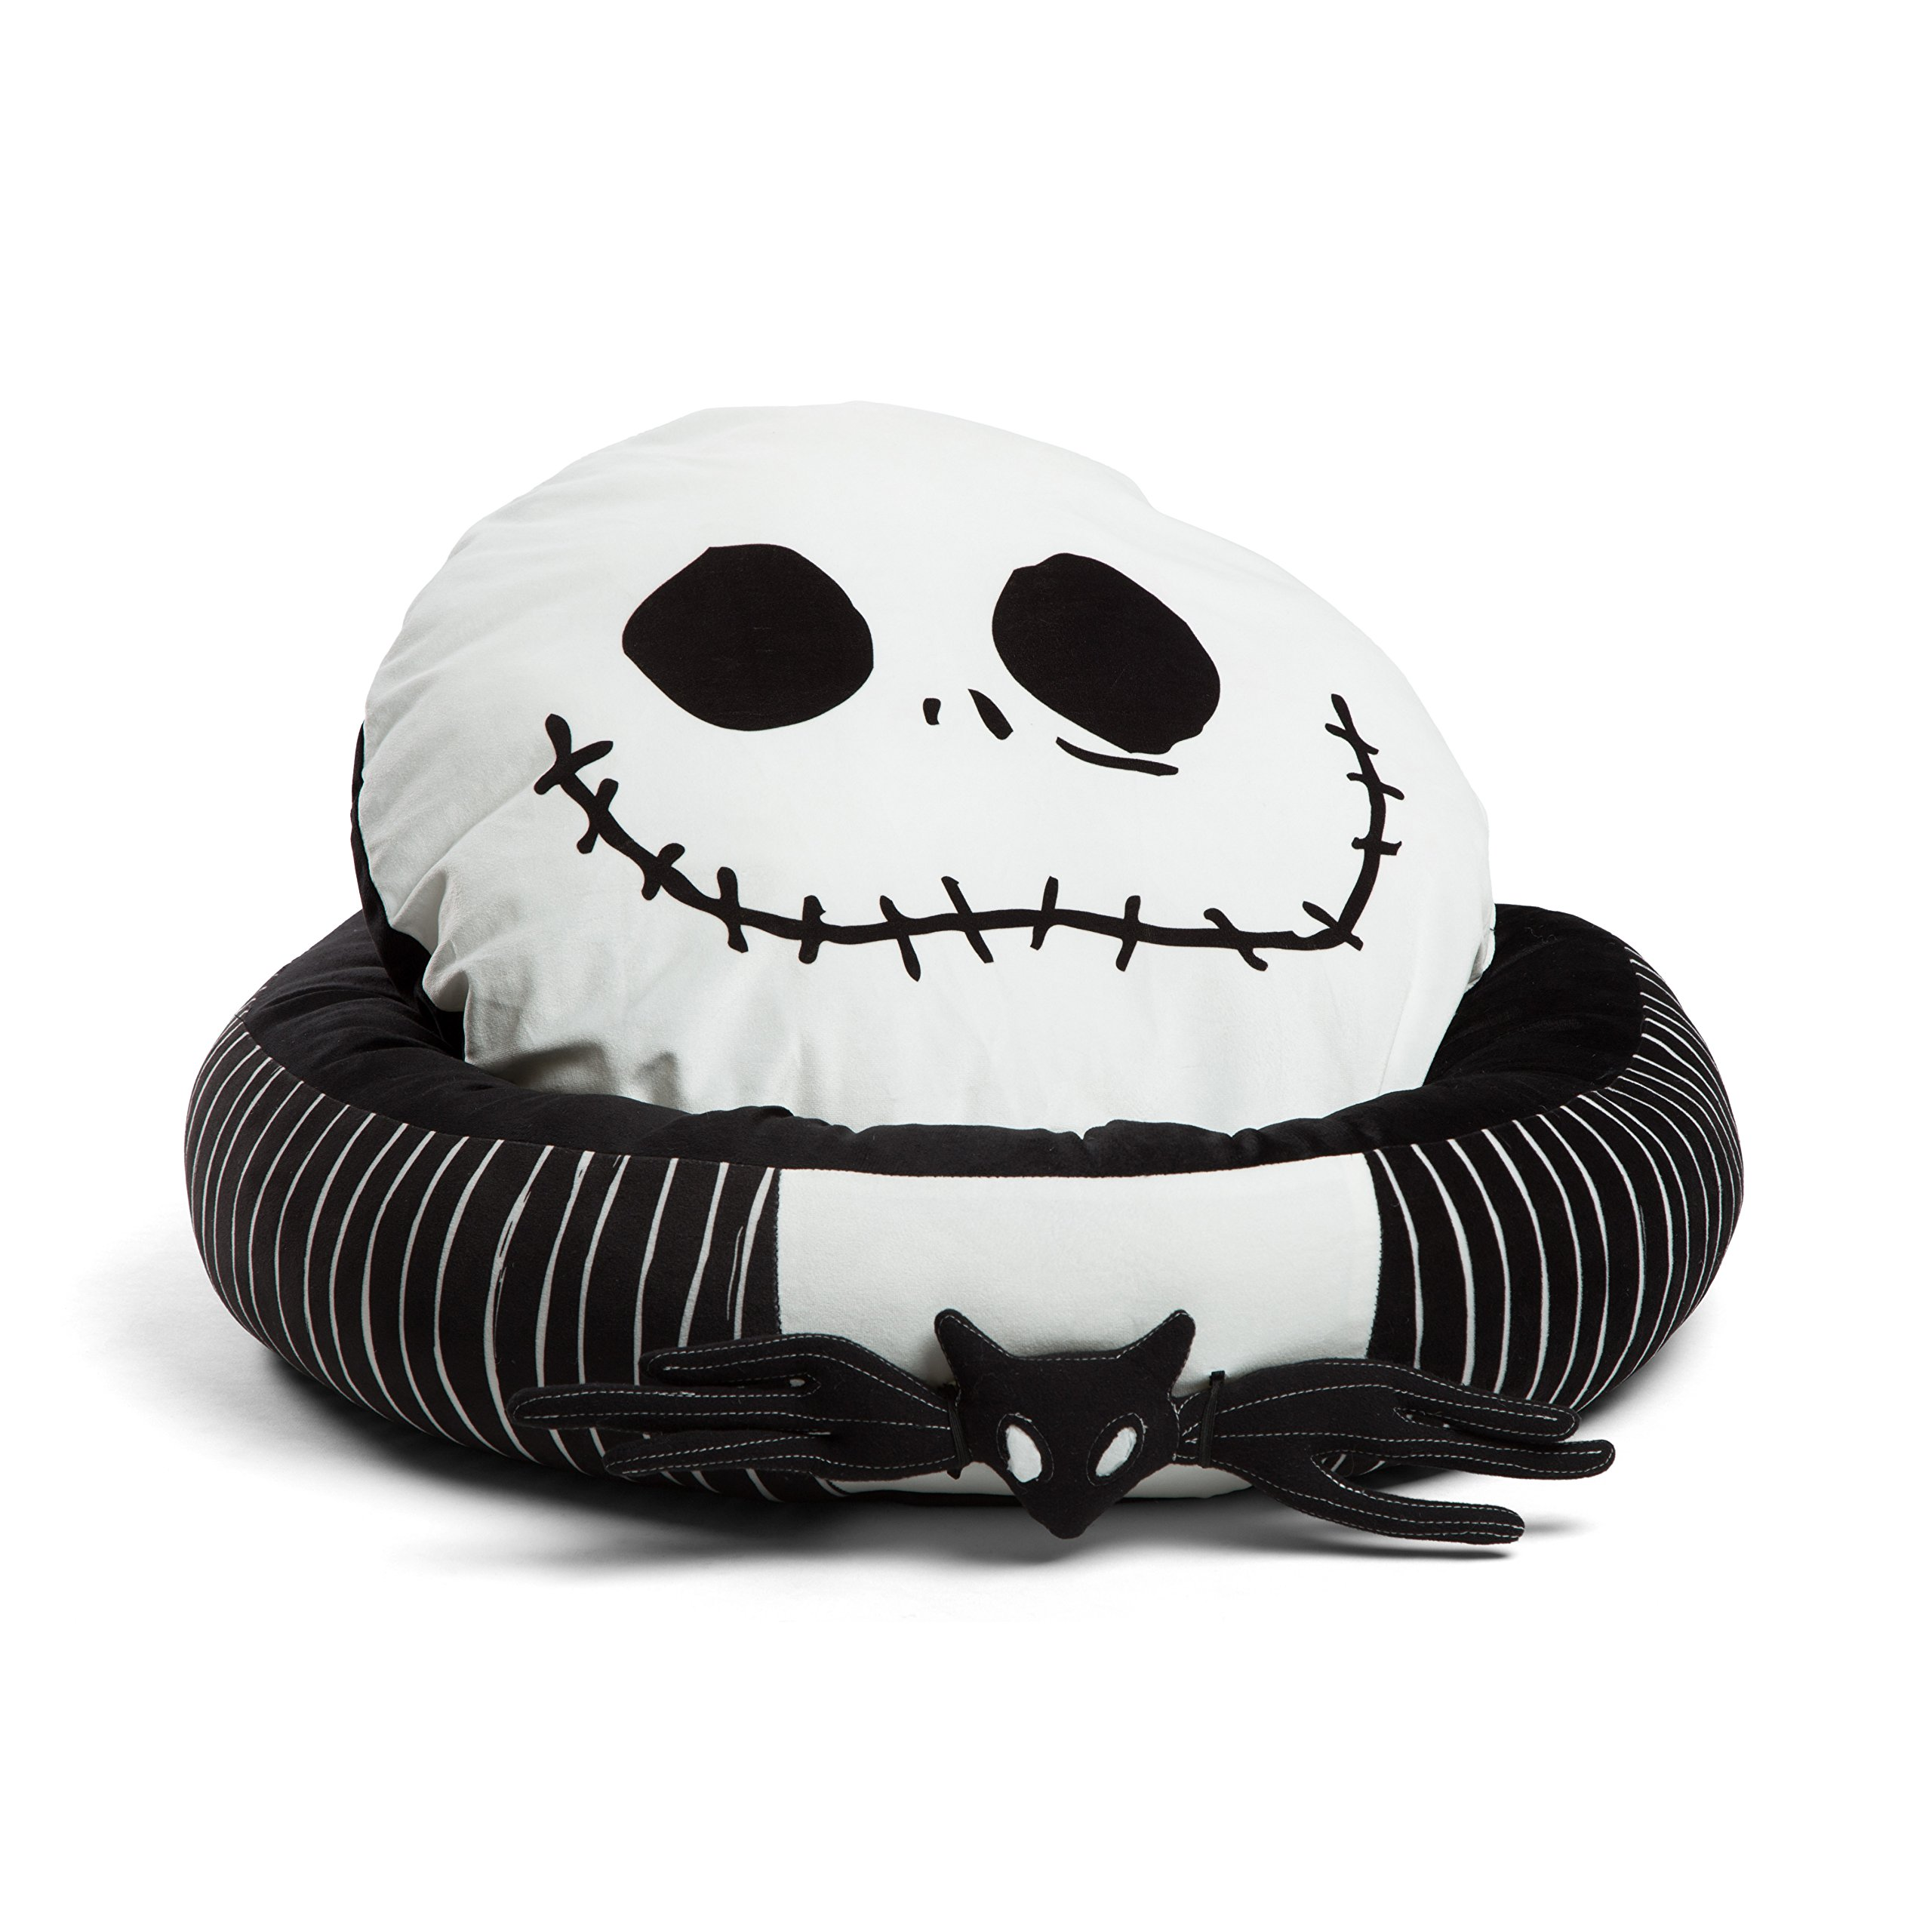 """Disney Nightmare Before Christmas Jack Skellington Bolstered Round Bumper Dog Bed/Cat Bed with Removable Toy Bat (Includes Squeaker), Reversible Insert, Dirt/Water Resistant Bottom, 24""""x24""""x7"""""""